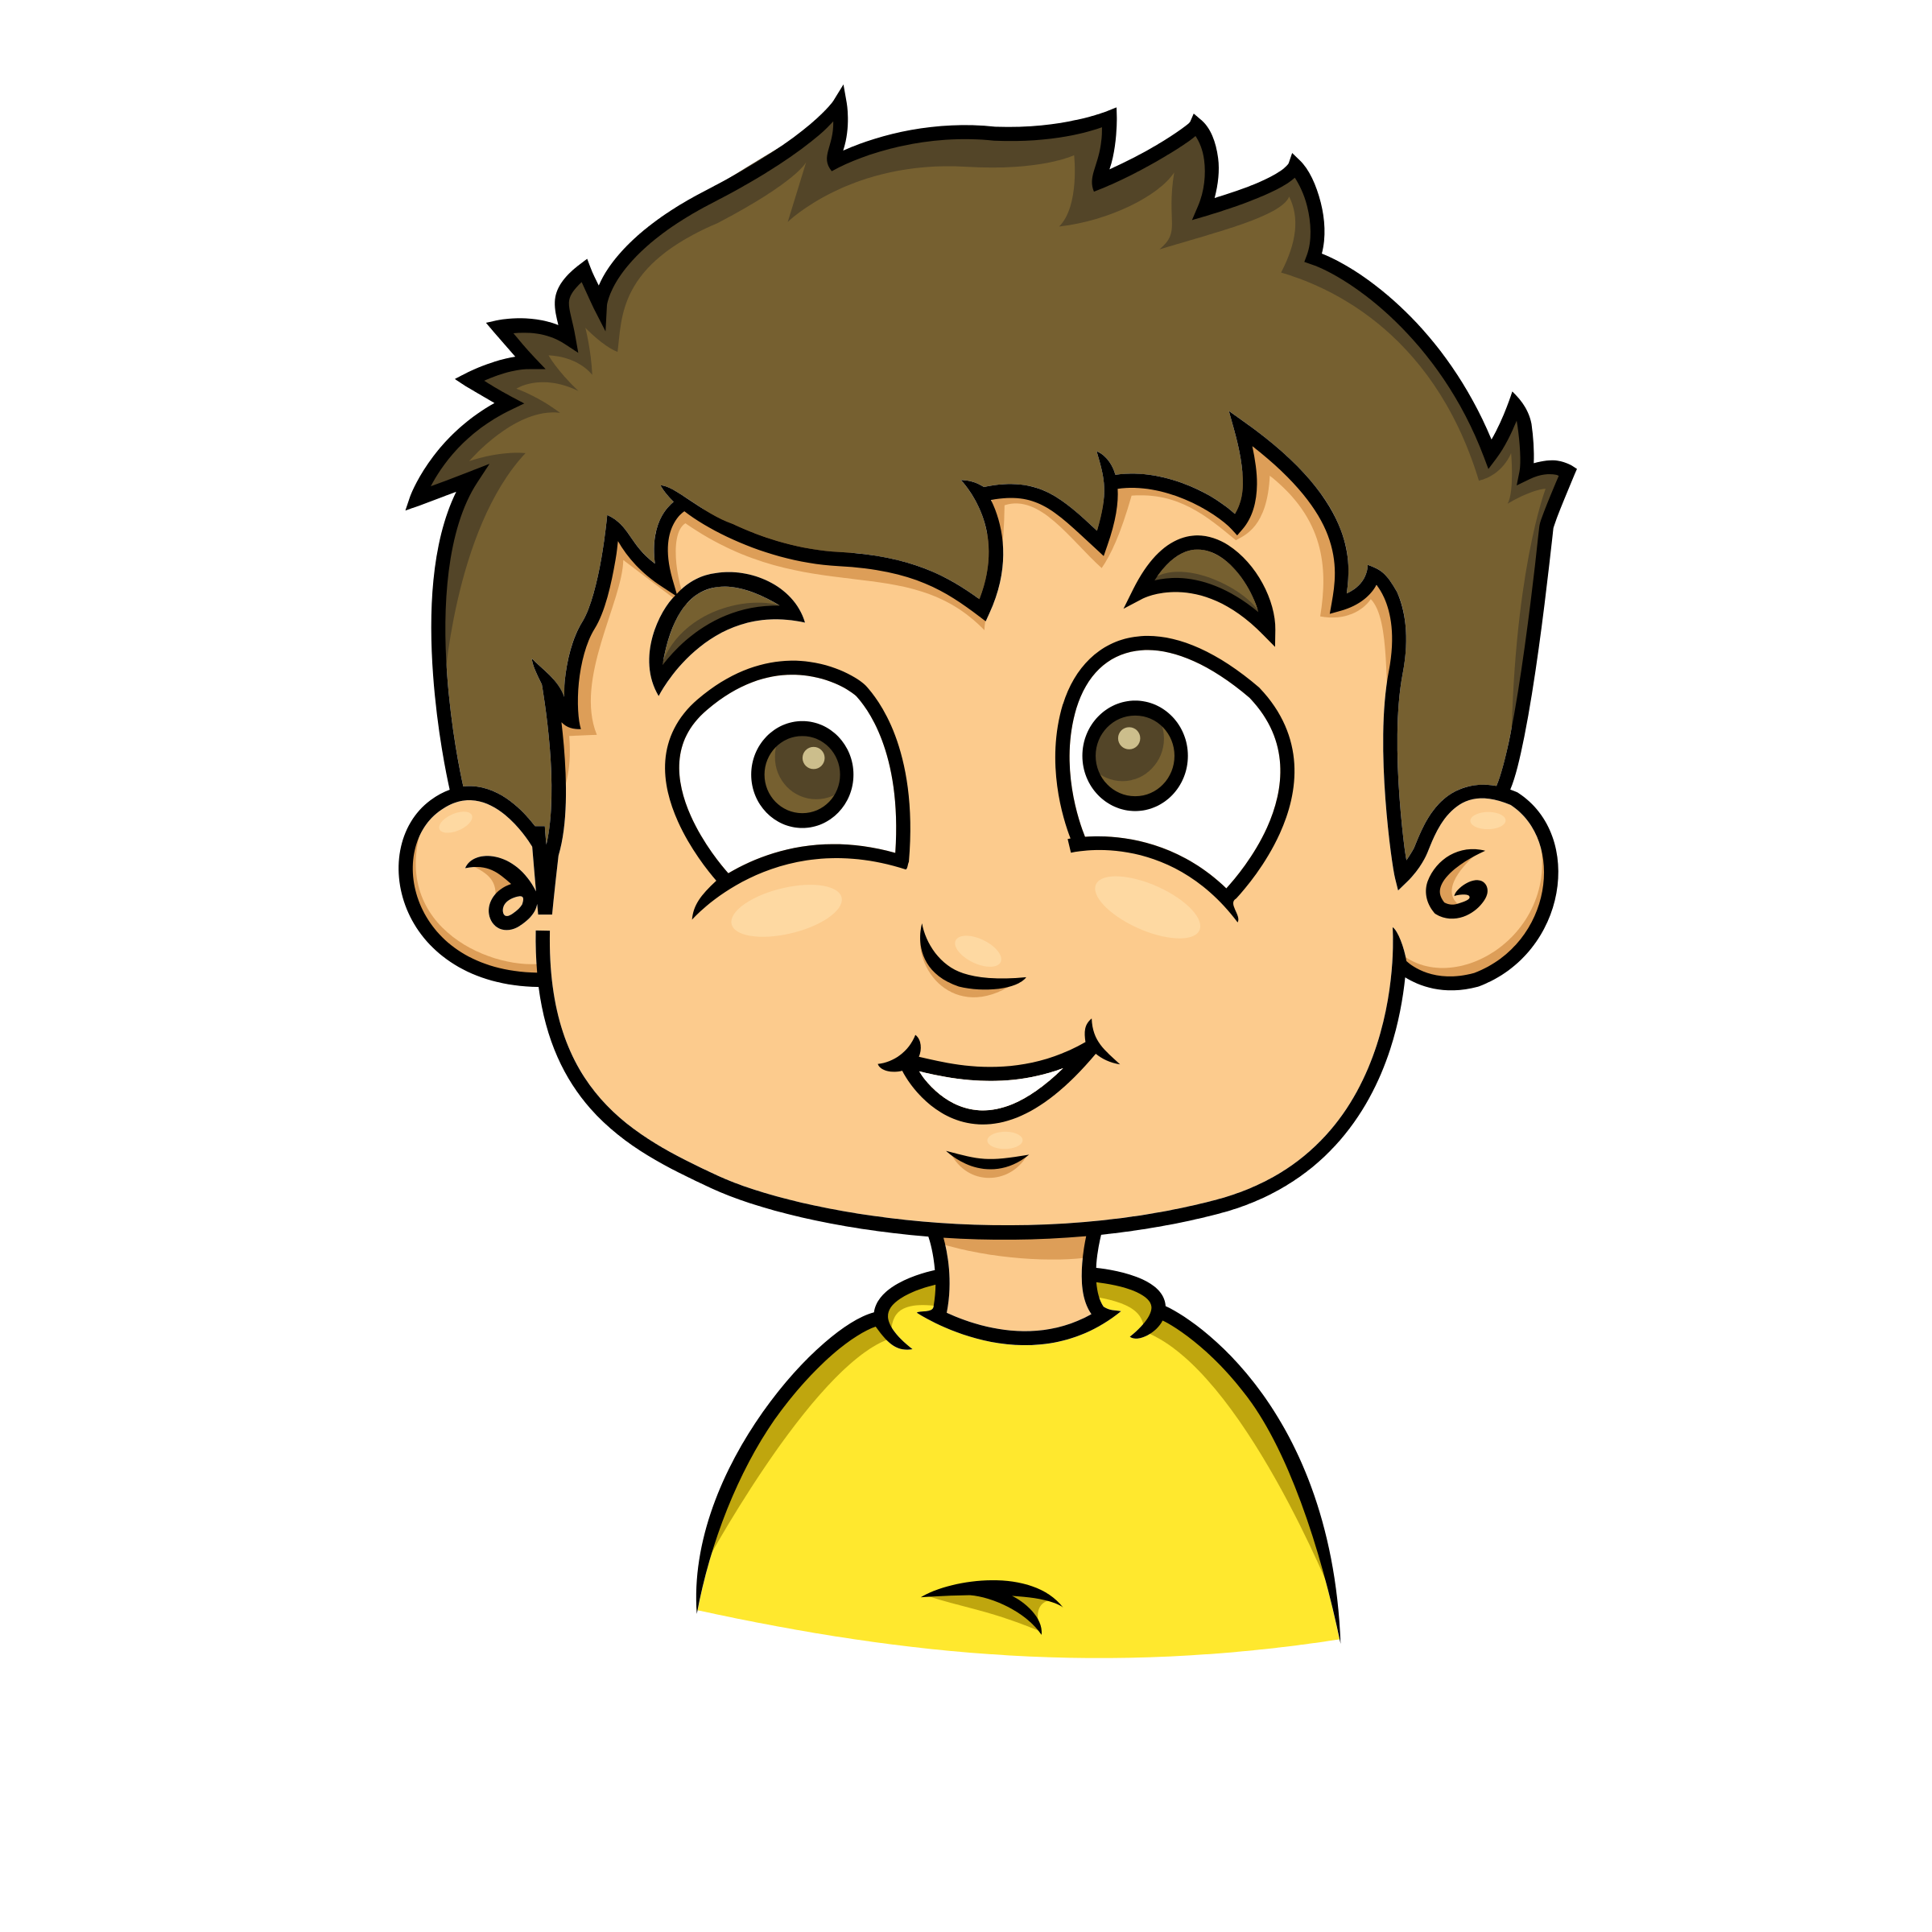 Child Clipart - Clipart Kid-Child Clipart - Clipart Kid-4